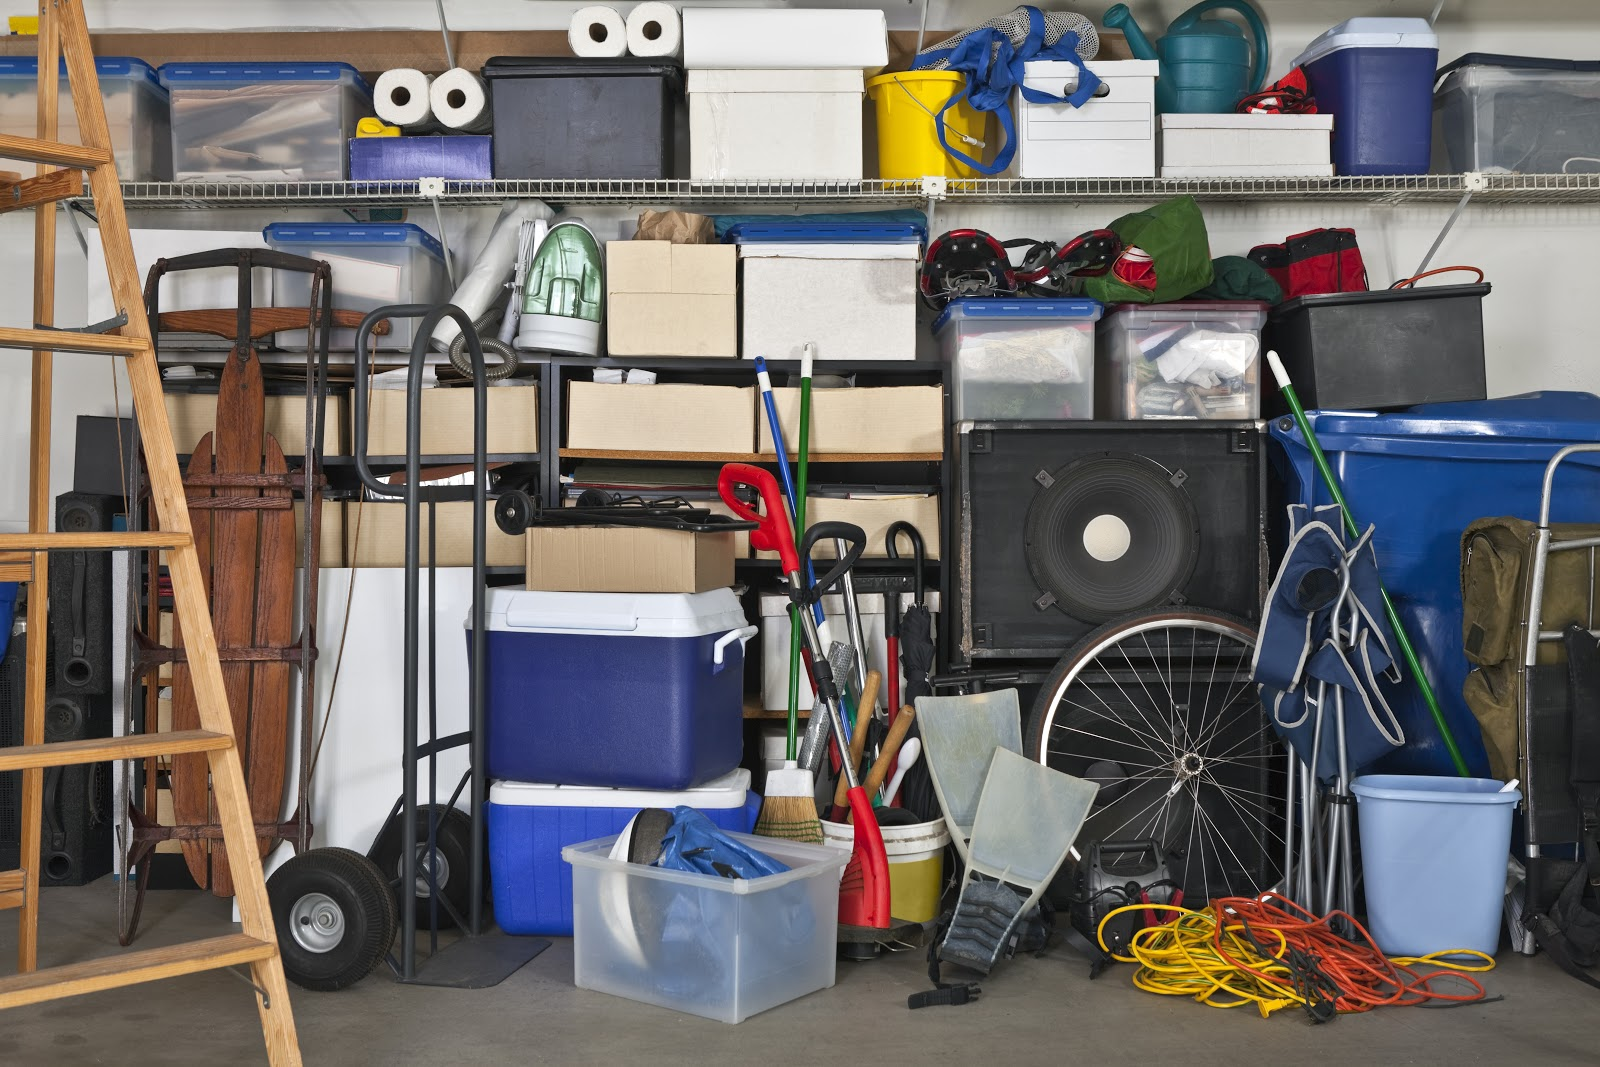 And there you have it! Outfitted with this guide and a large dose of motivation, you should have an organized garage in no time. Don't be afraid to ask for help. Assign simple tasks to people in the family and make it a group task, or invite friends over to offer a helping hand. And remember to utilize your garage storage space appropriately so things don't get out of hand again. You can do it!